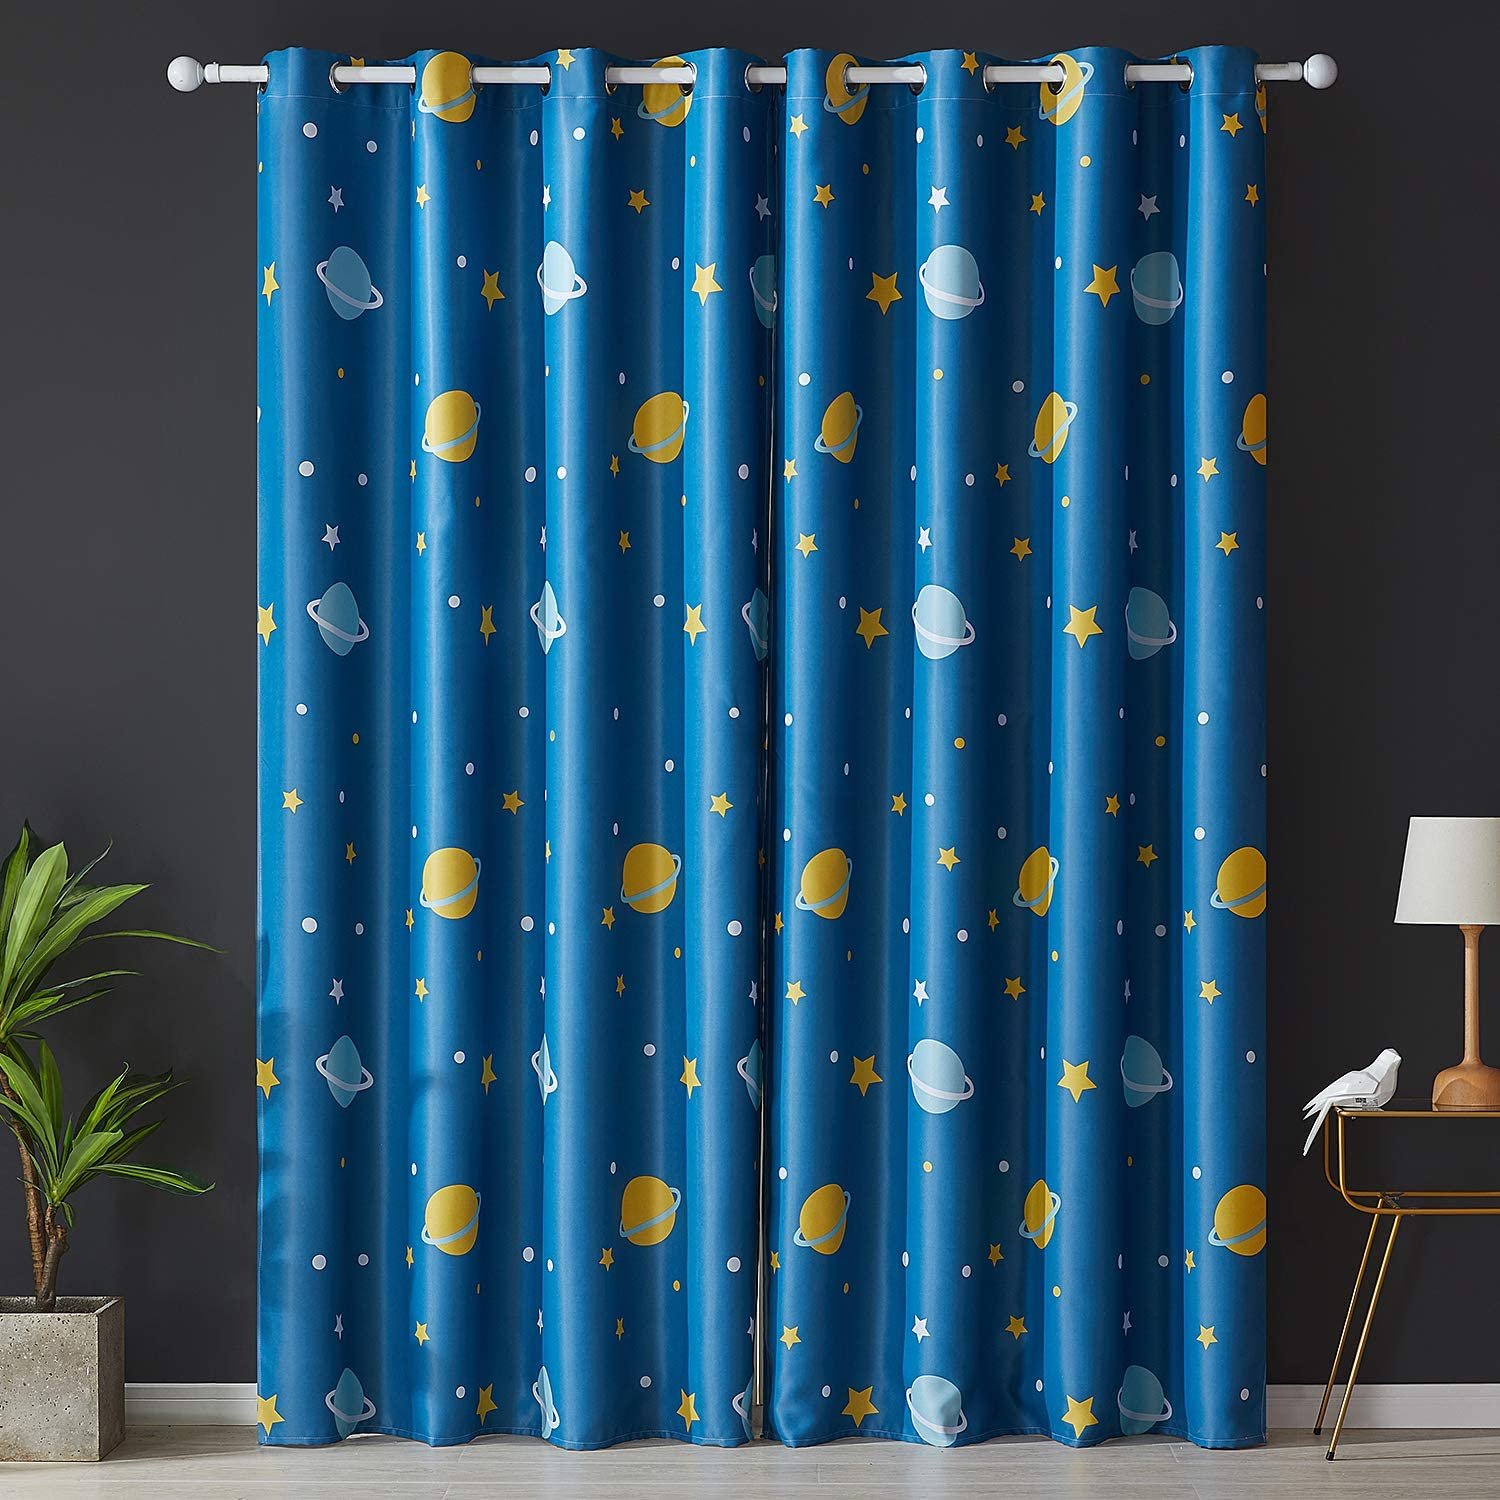 140cmx160cm Topfinel Printed Kids Curtains Semi Blackout for Children Bedroom Eyelet Thermal Insulated Room Darkening Planet Patterned Curtains for Nursery 54x63 Inch Drop Set of 2 Panels Blue